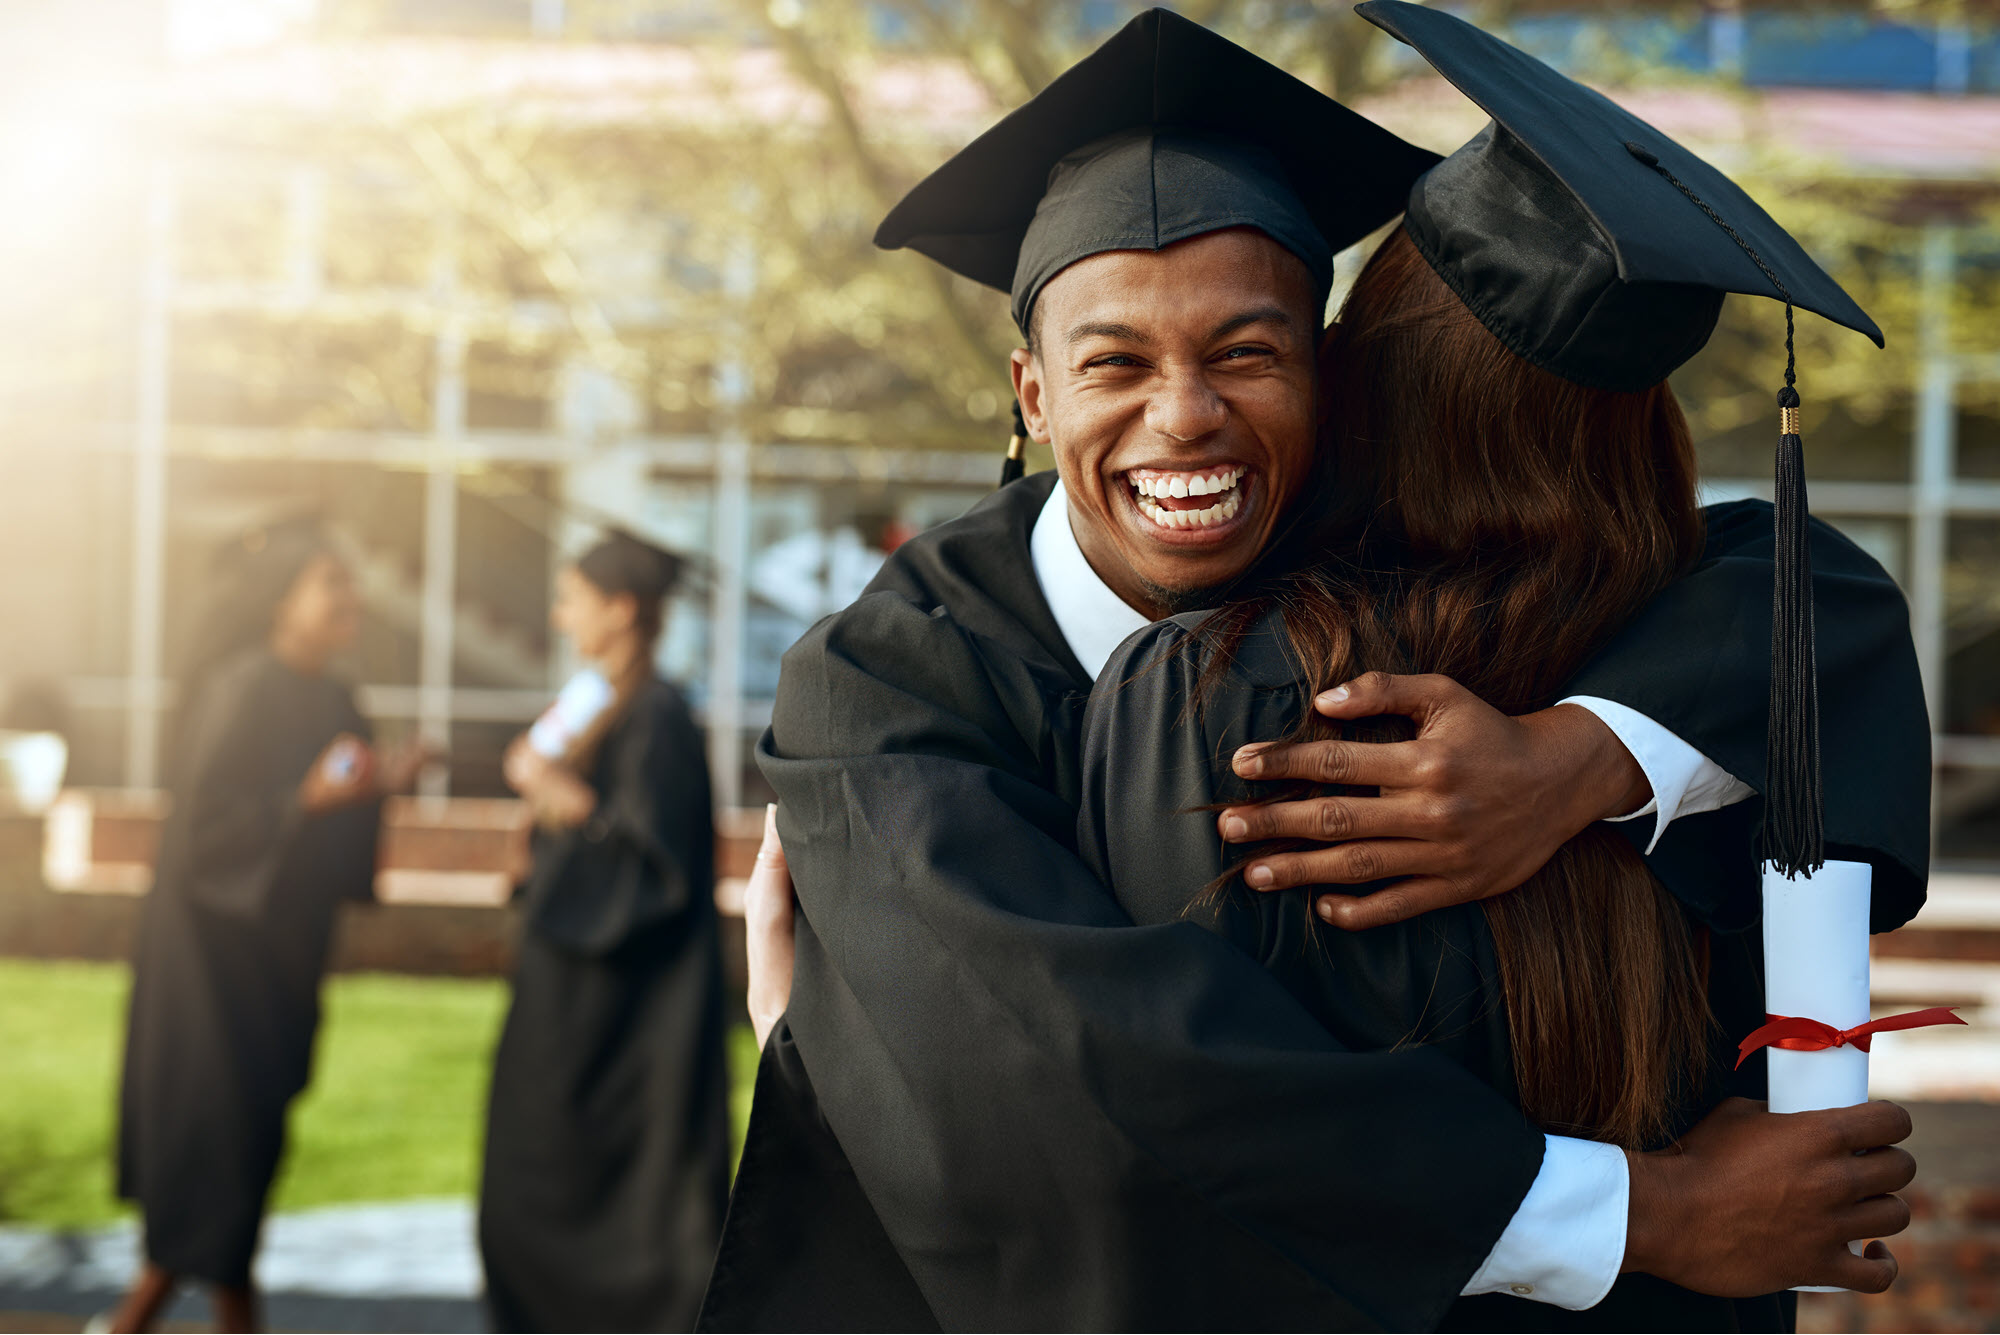 High school male graduate hugging another graduate